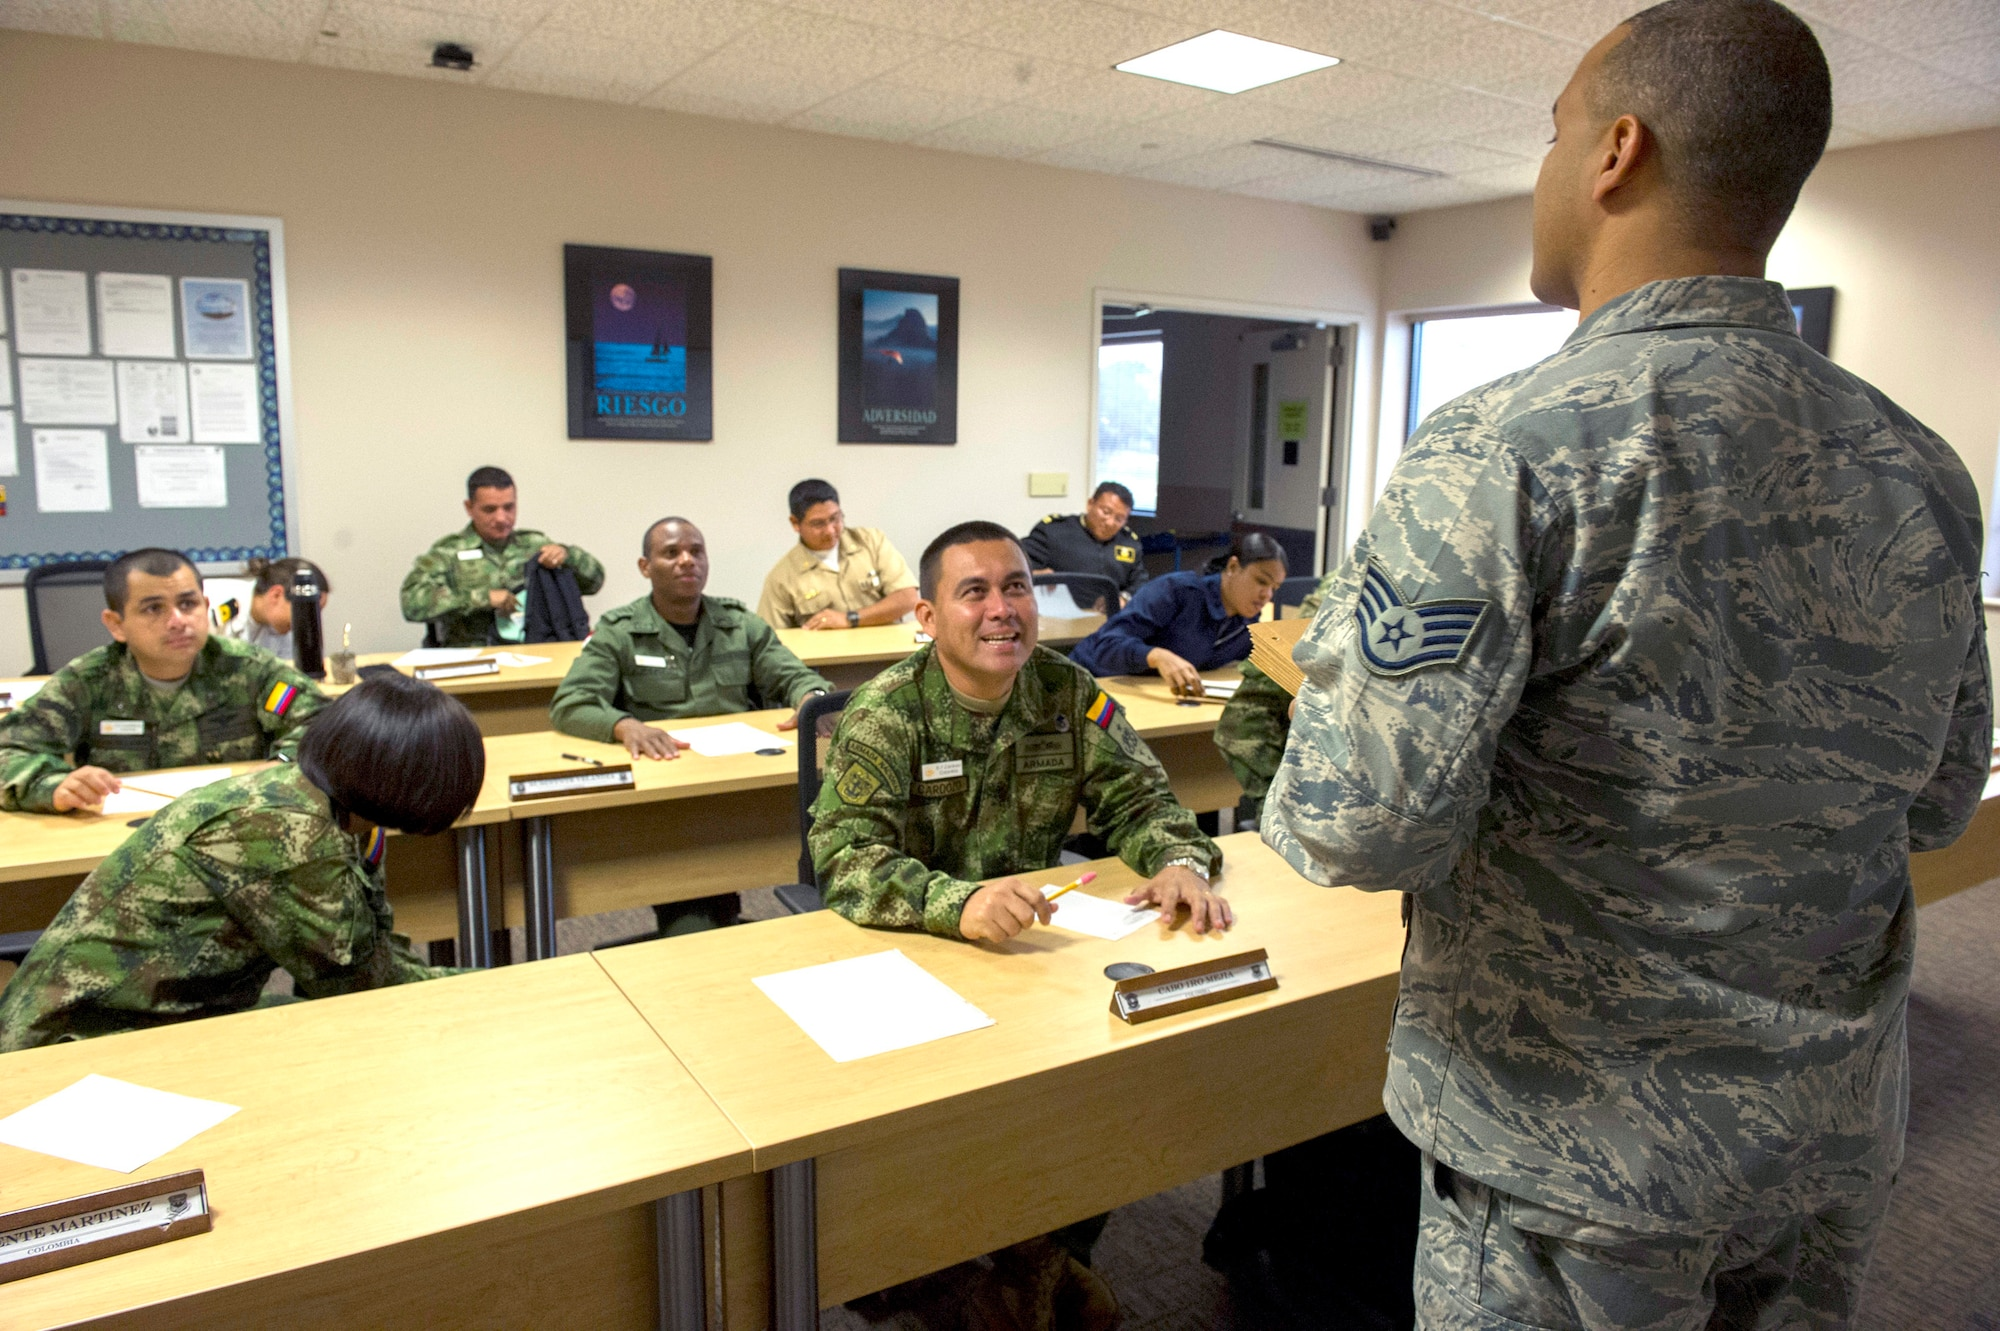 Staff Sgt. Jaime Torres, USAF instructor at the Inter-American Air Forces Academy, prepares students for their final exam in the International Logistics course, Joint Base San Antonio-Lackland, TX, Dec. 7, 2012. Thirteen partner nation students from Colombia, Dominican Republic, Panama, Ecuador, and Uruguay attended the International Logistics course during the last semester of 2012. The International Logistics course focuses on joint logistics principals, security cooperation and foreign military sales.    (US Air Force Photo by Staff Sgt. Marleah Miller)